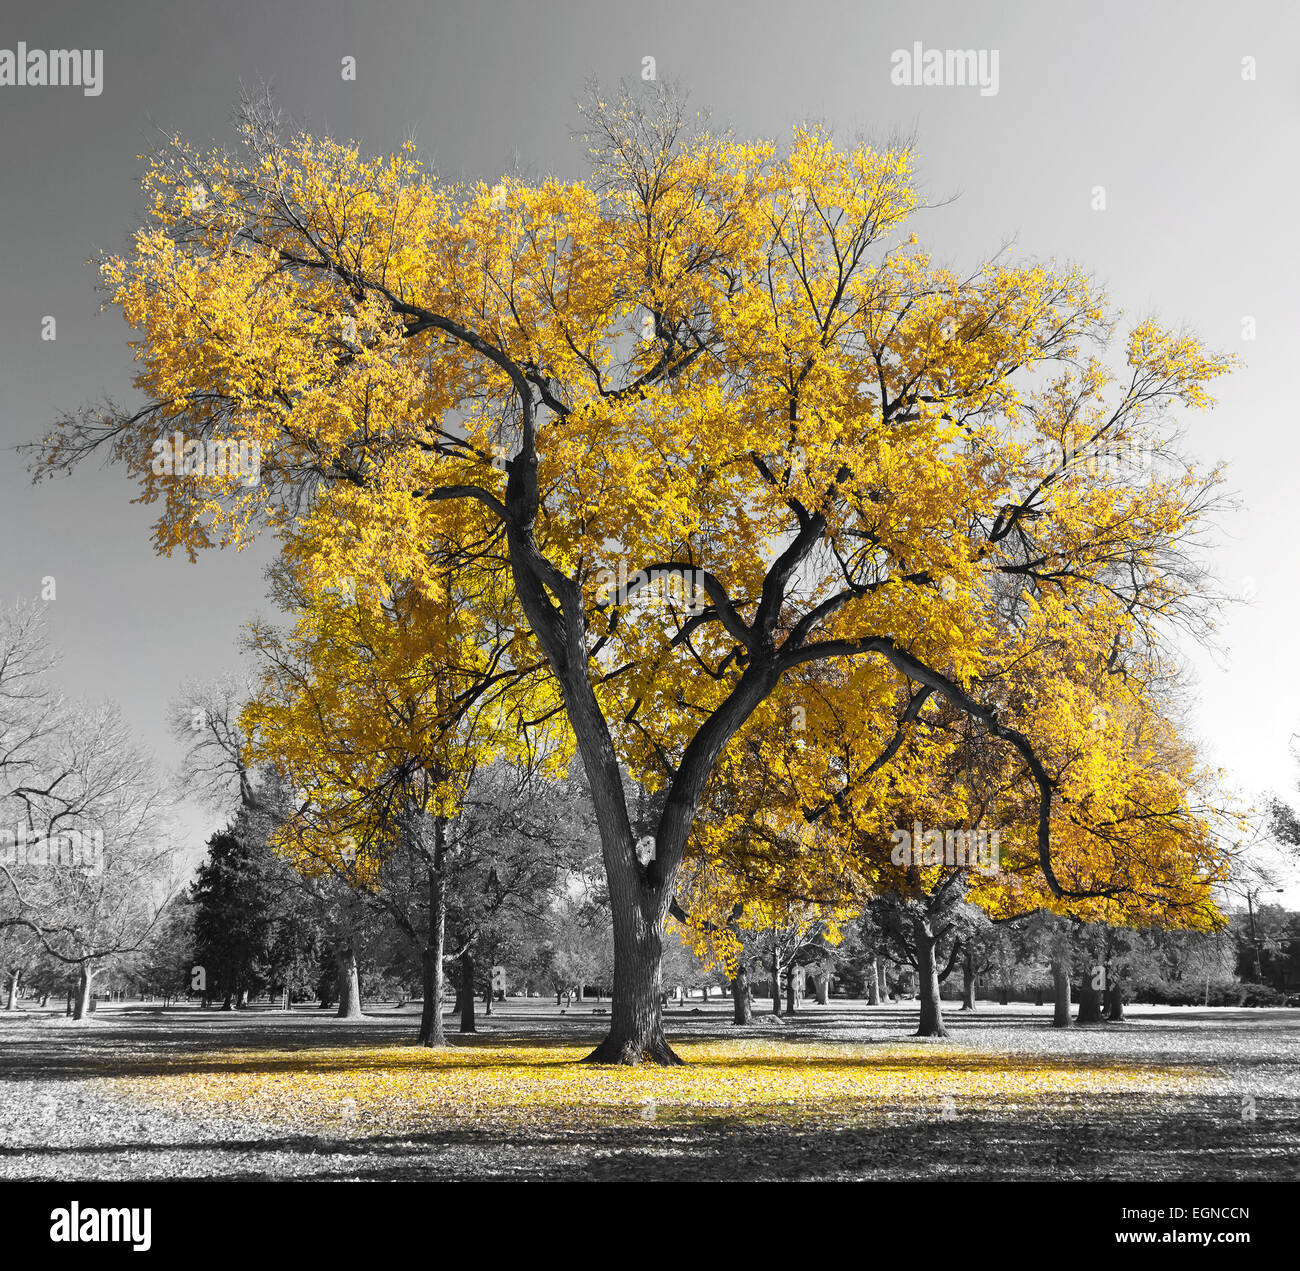 Big yellow tree in a black and white landscape - Stock Image